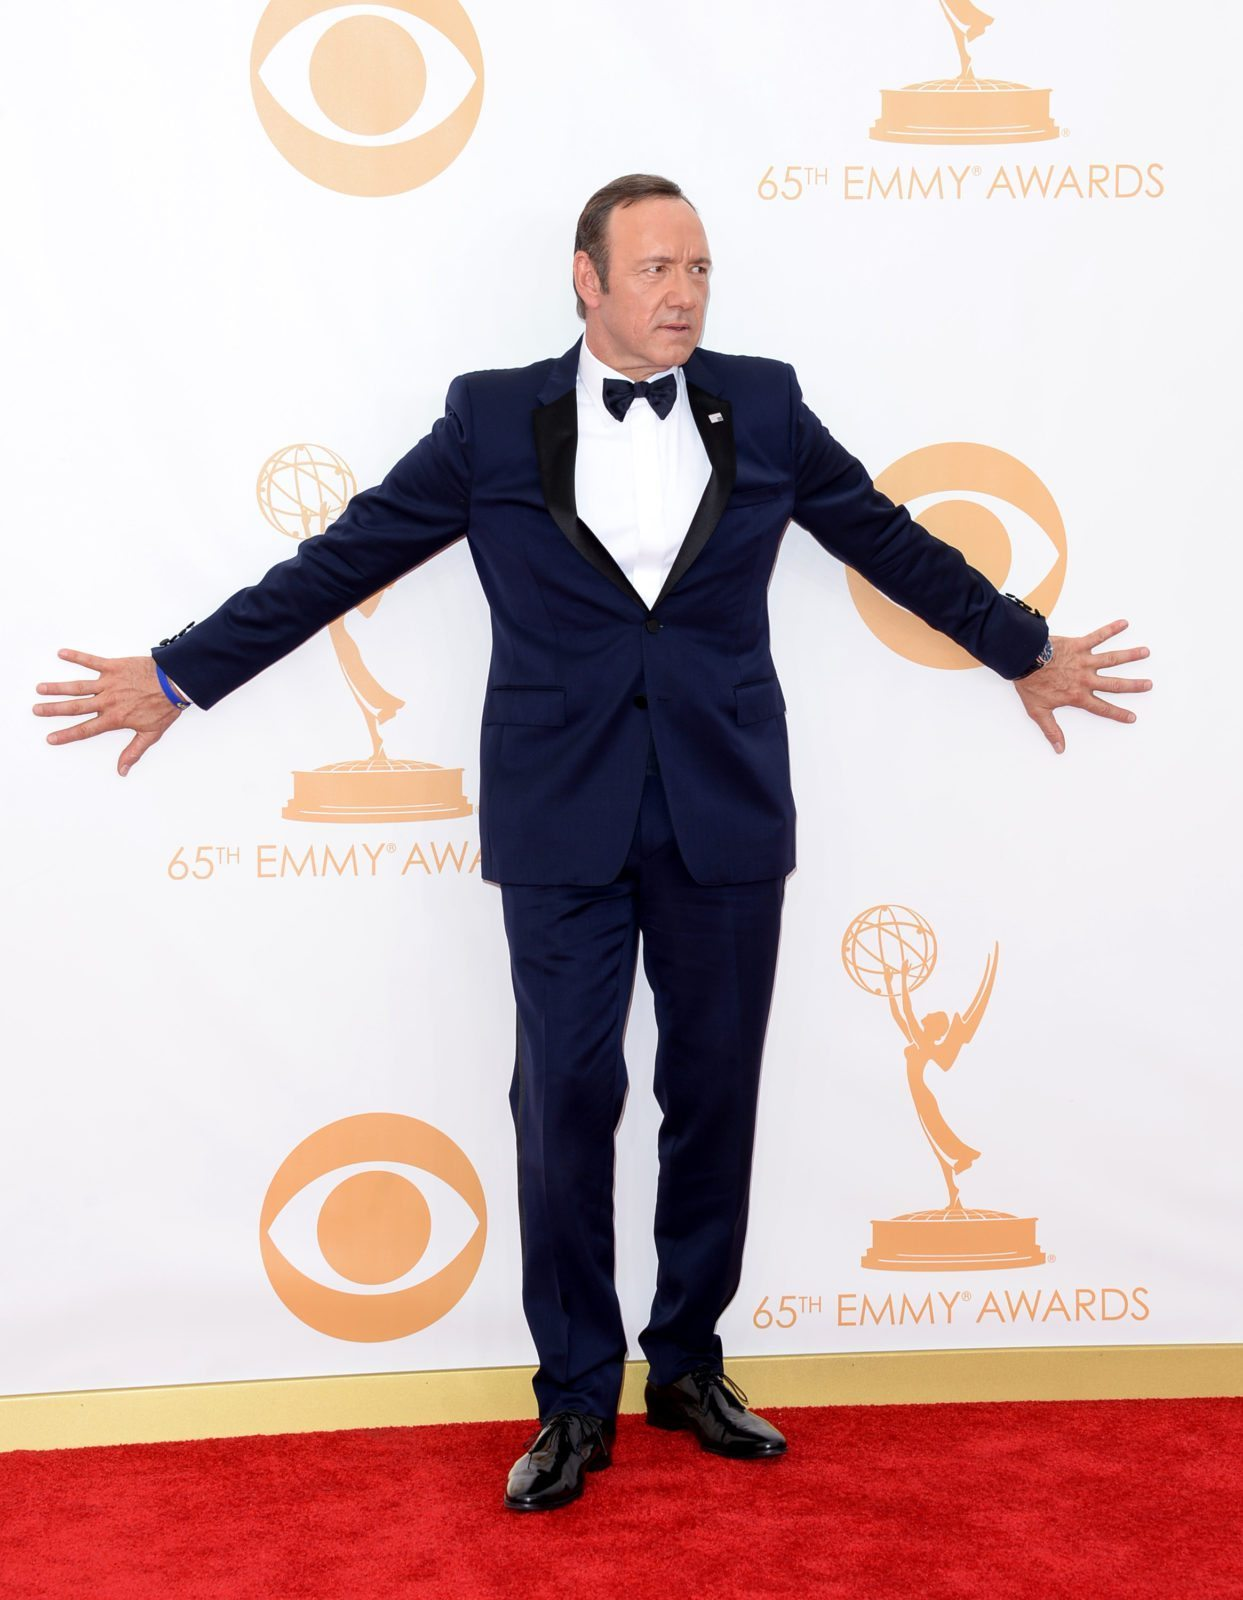 LOS ANGELES, CA - SEPTEMBER 22: Actor Kevin Spacey arrives at the 65th Annual Primetime Emmy Awards held at Nokia Theatre L.A. Live on September 22, 2013 in Los Angeles, California. (Photo by Jason Merritt/Getty Images)